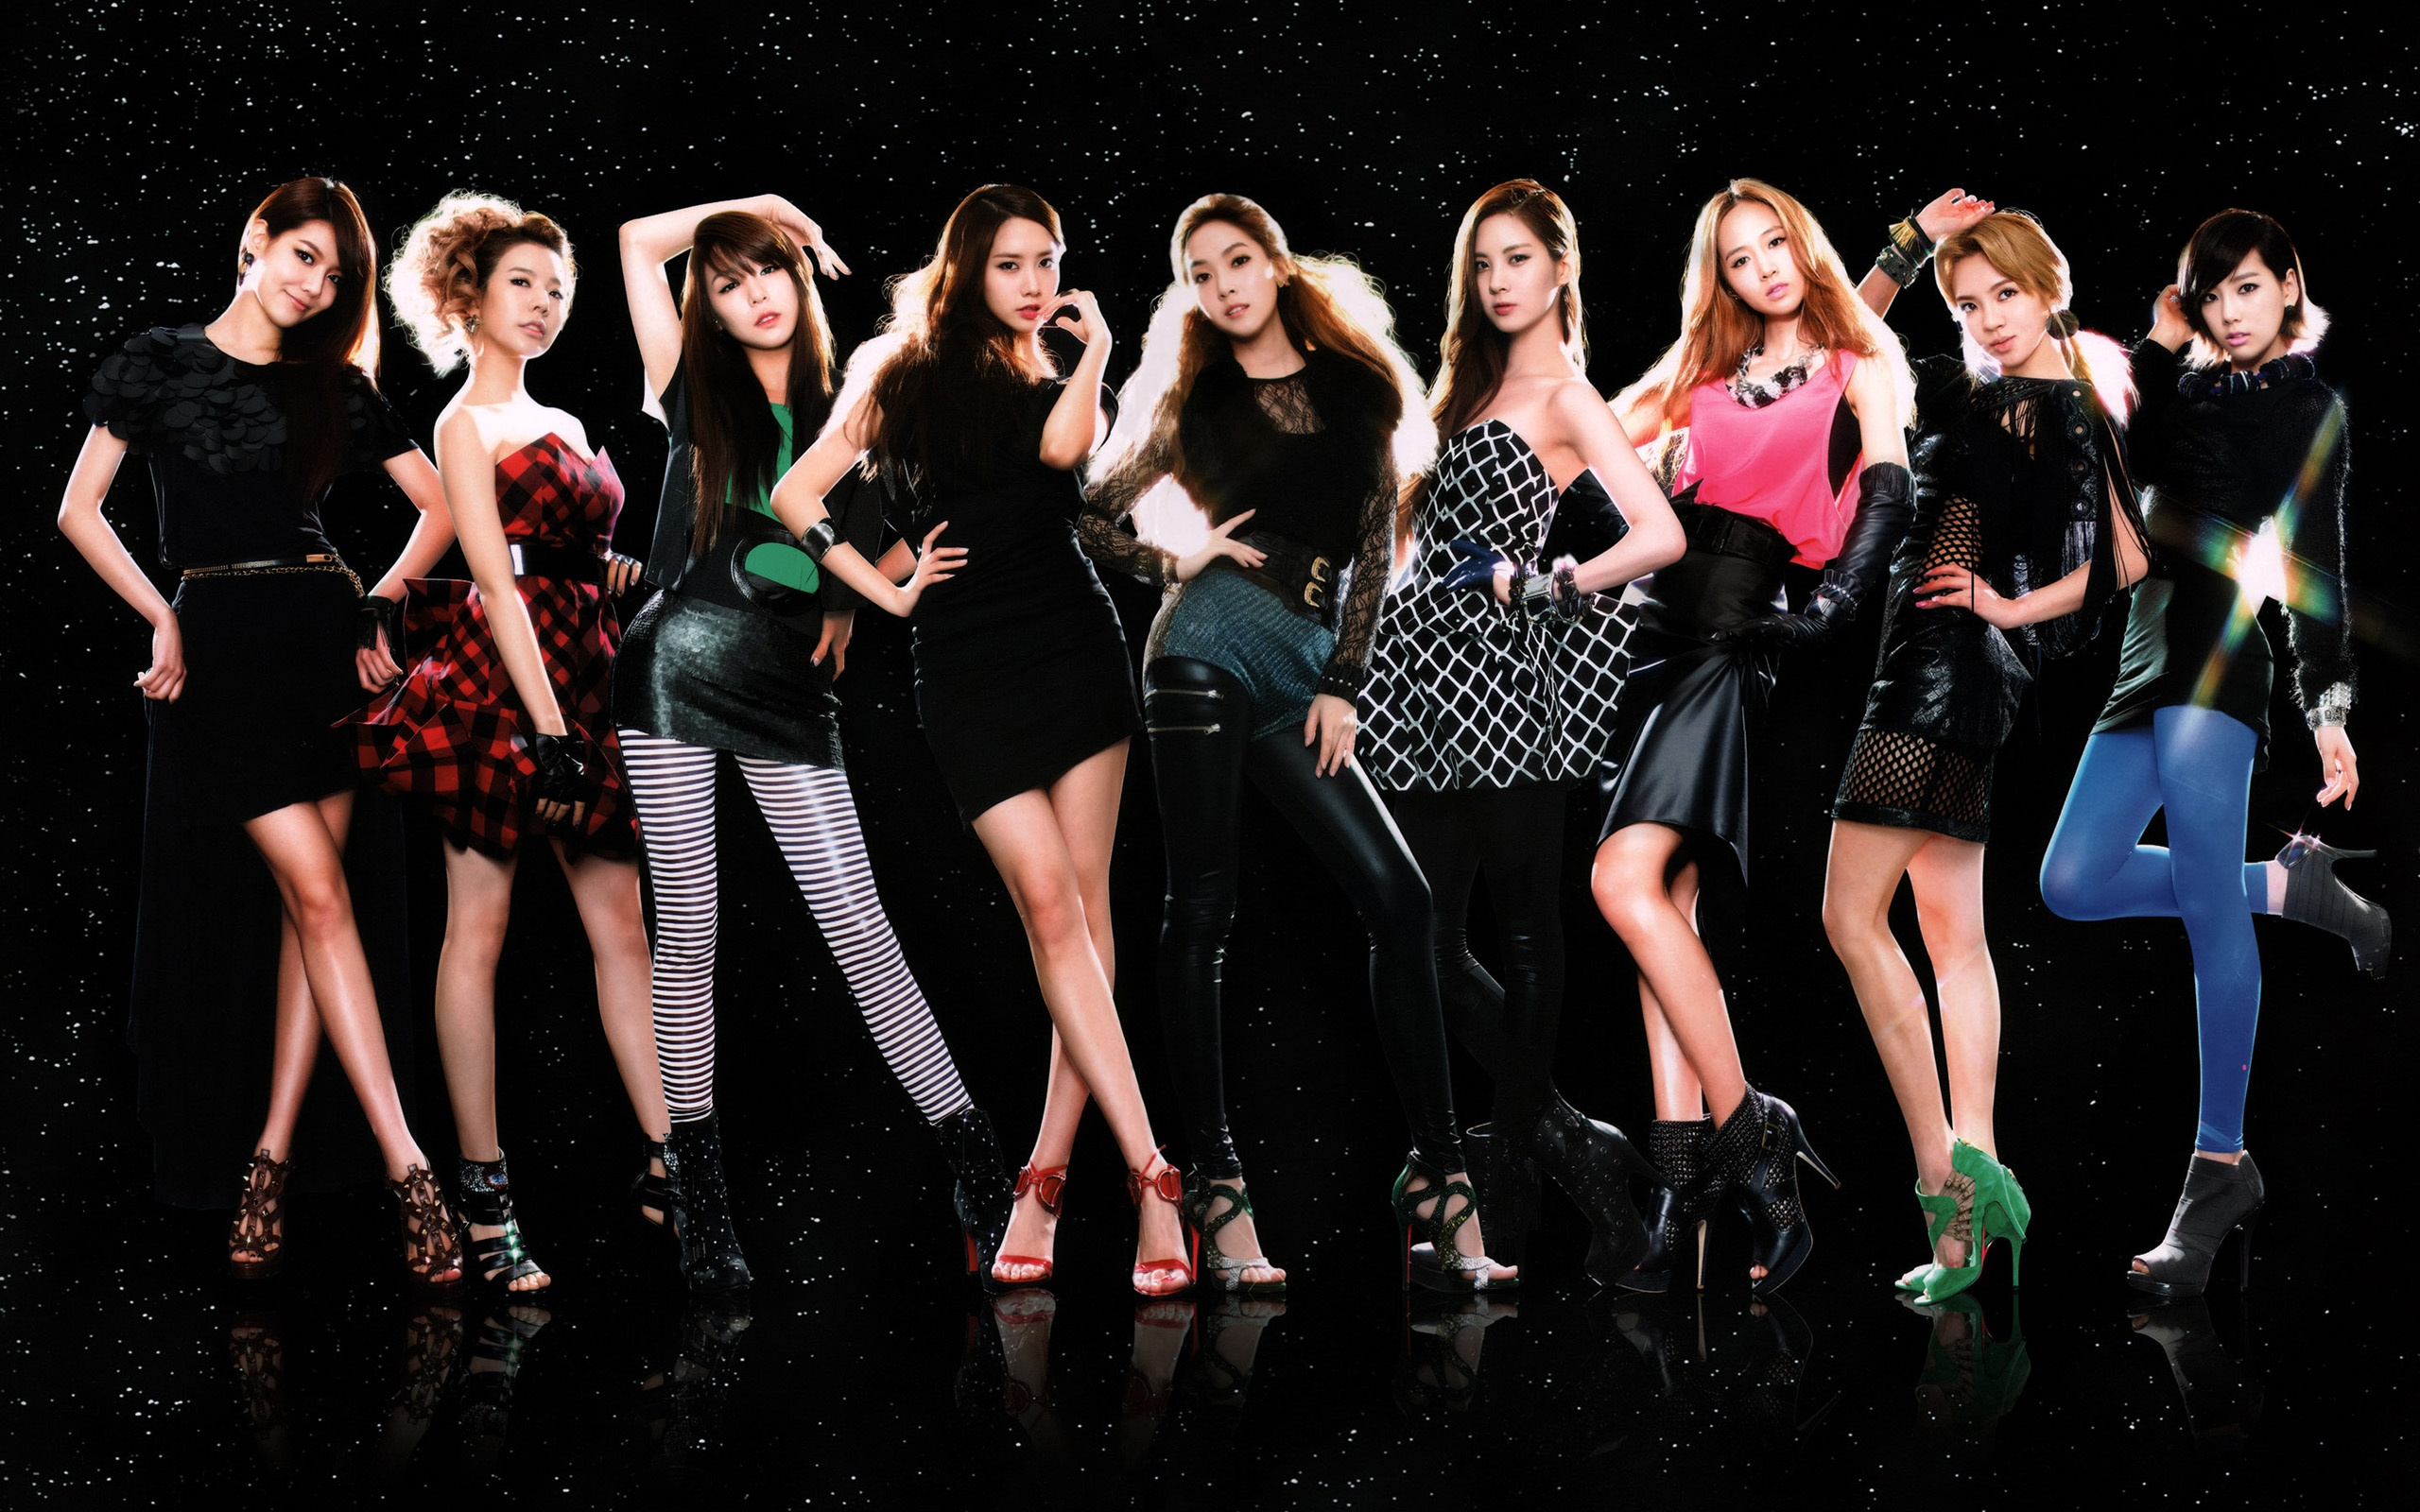 Wallpaper Girls Generation 39 2560x1600 Hd Picture Image